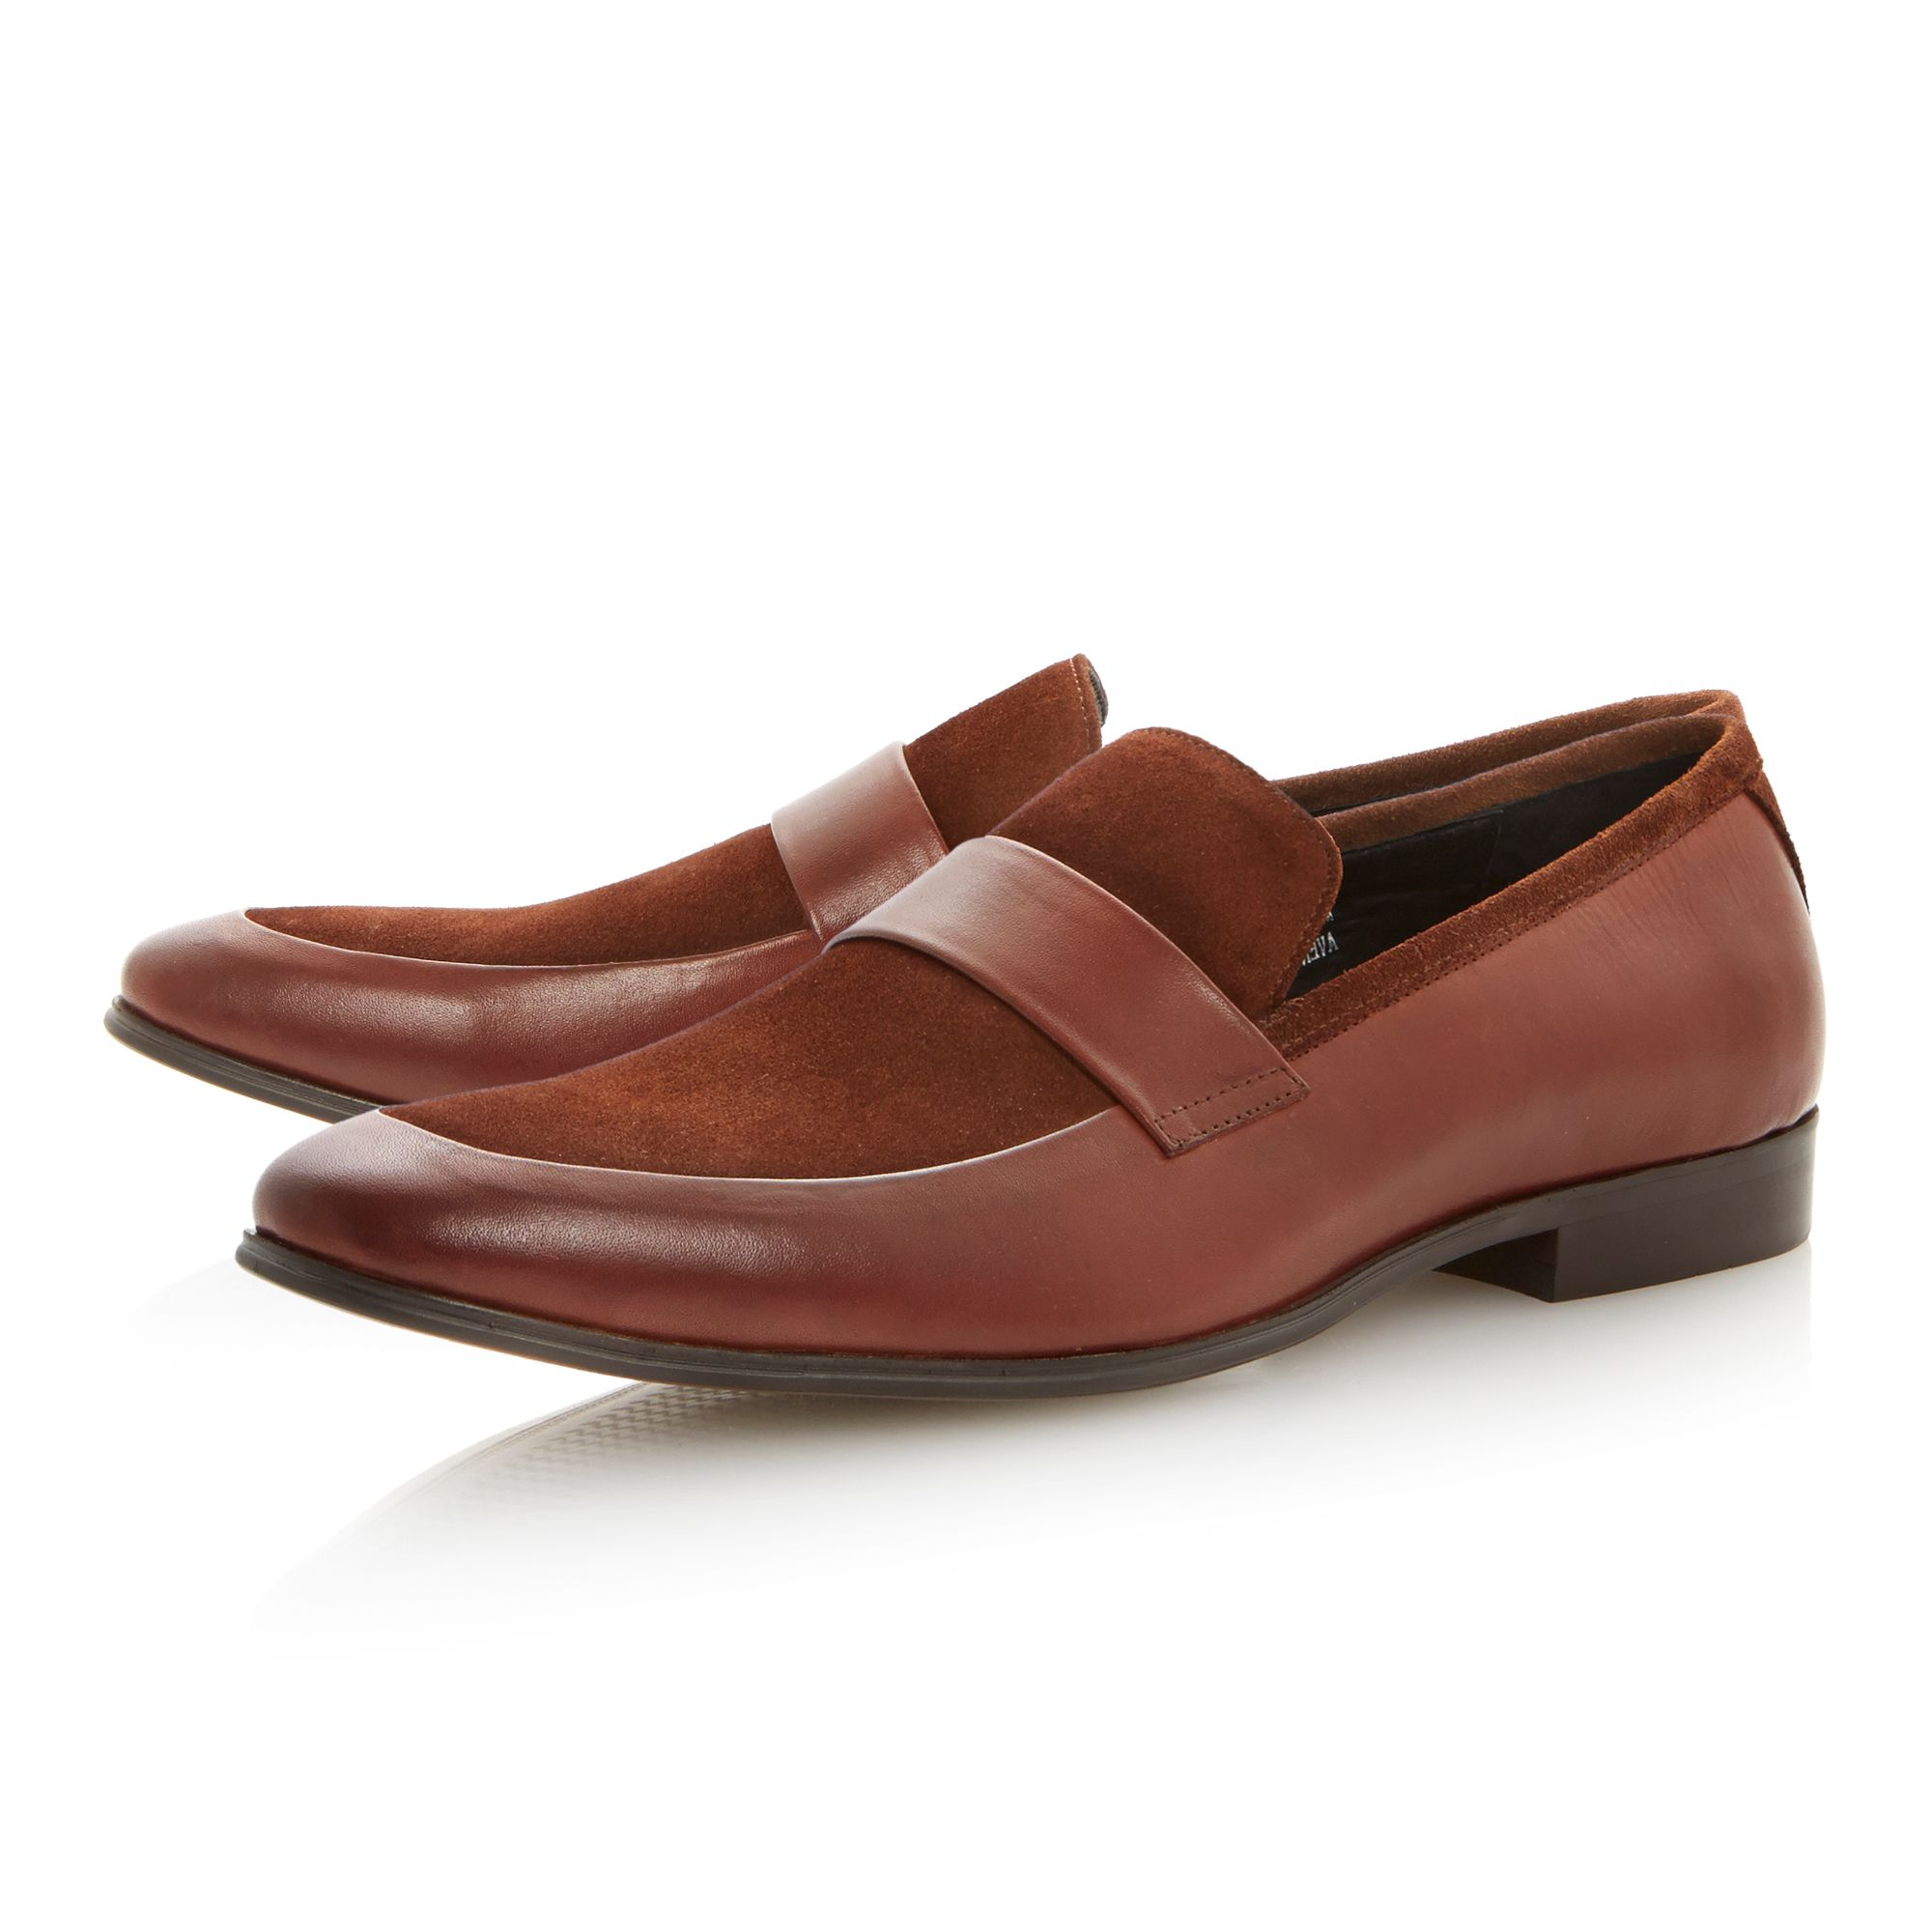 Avenger leather suede saddle loafers